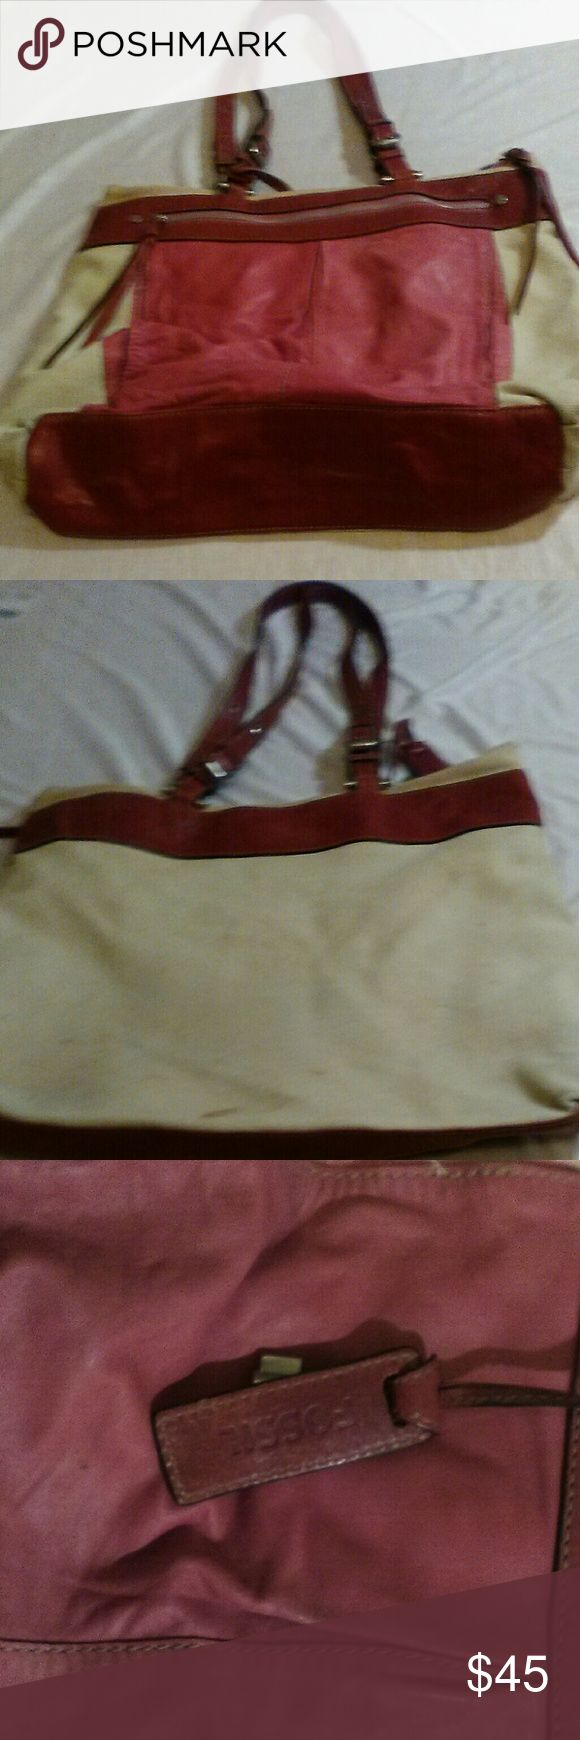 Large Fossil Purse Large Fossil purse. Very Good condition. No rips or tears. Fossil Bags Totes